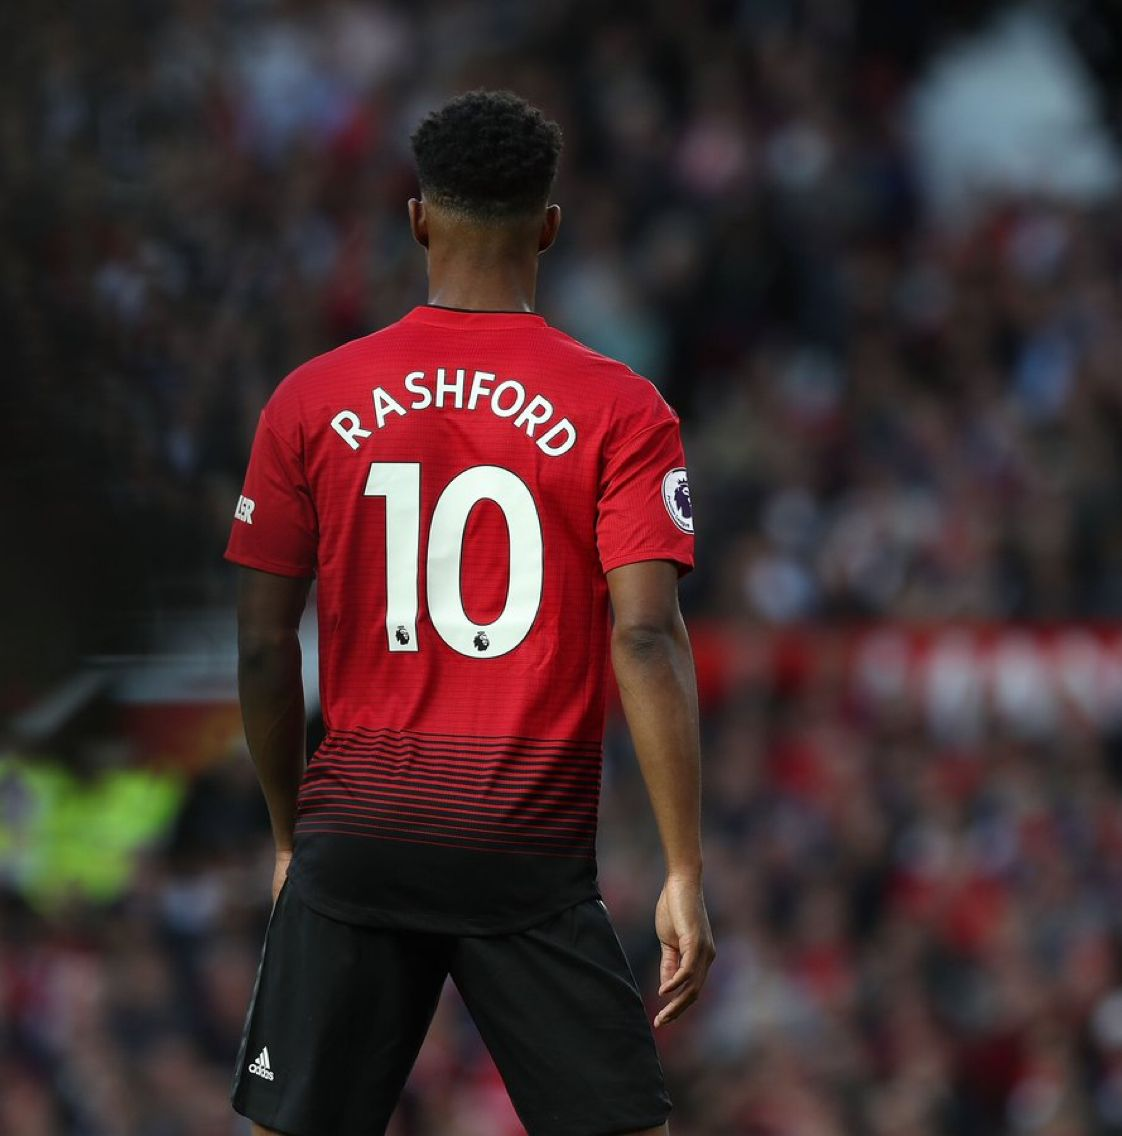 Pin By Fadhilah On Manchester United Football Club Mufc Leicester City Premier League Manchester United Premier League